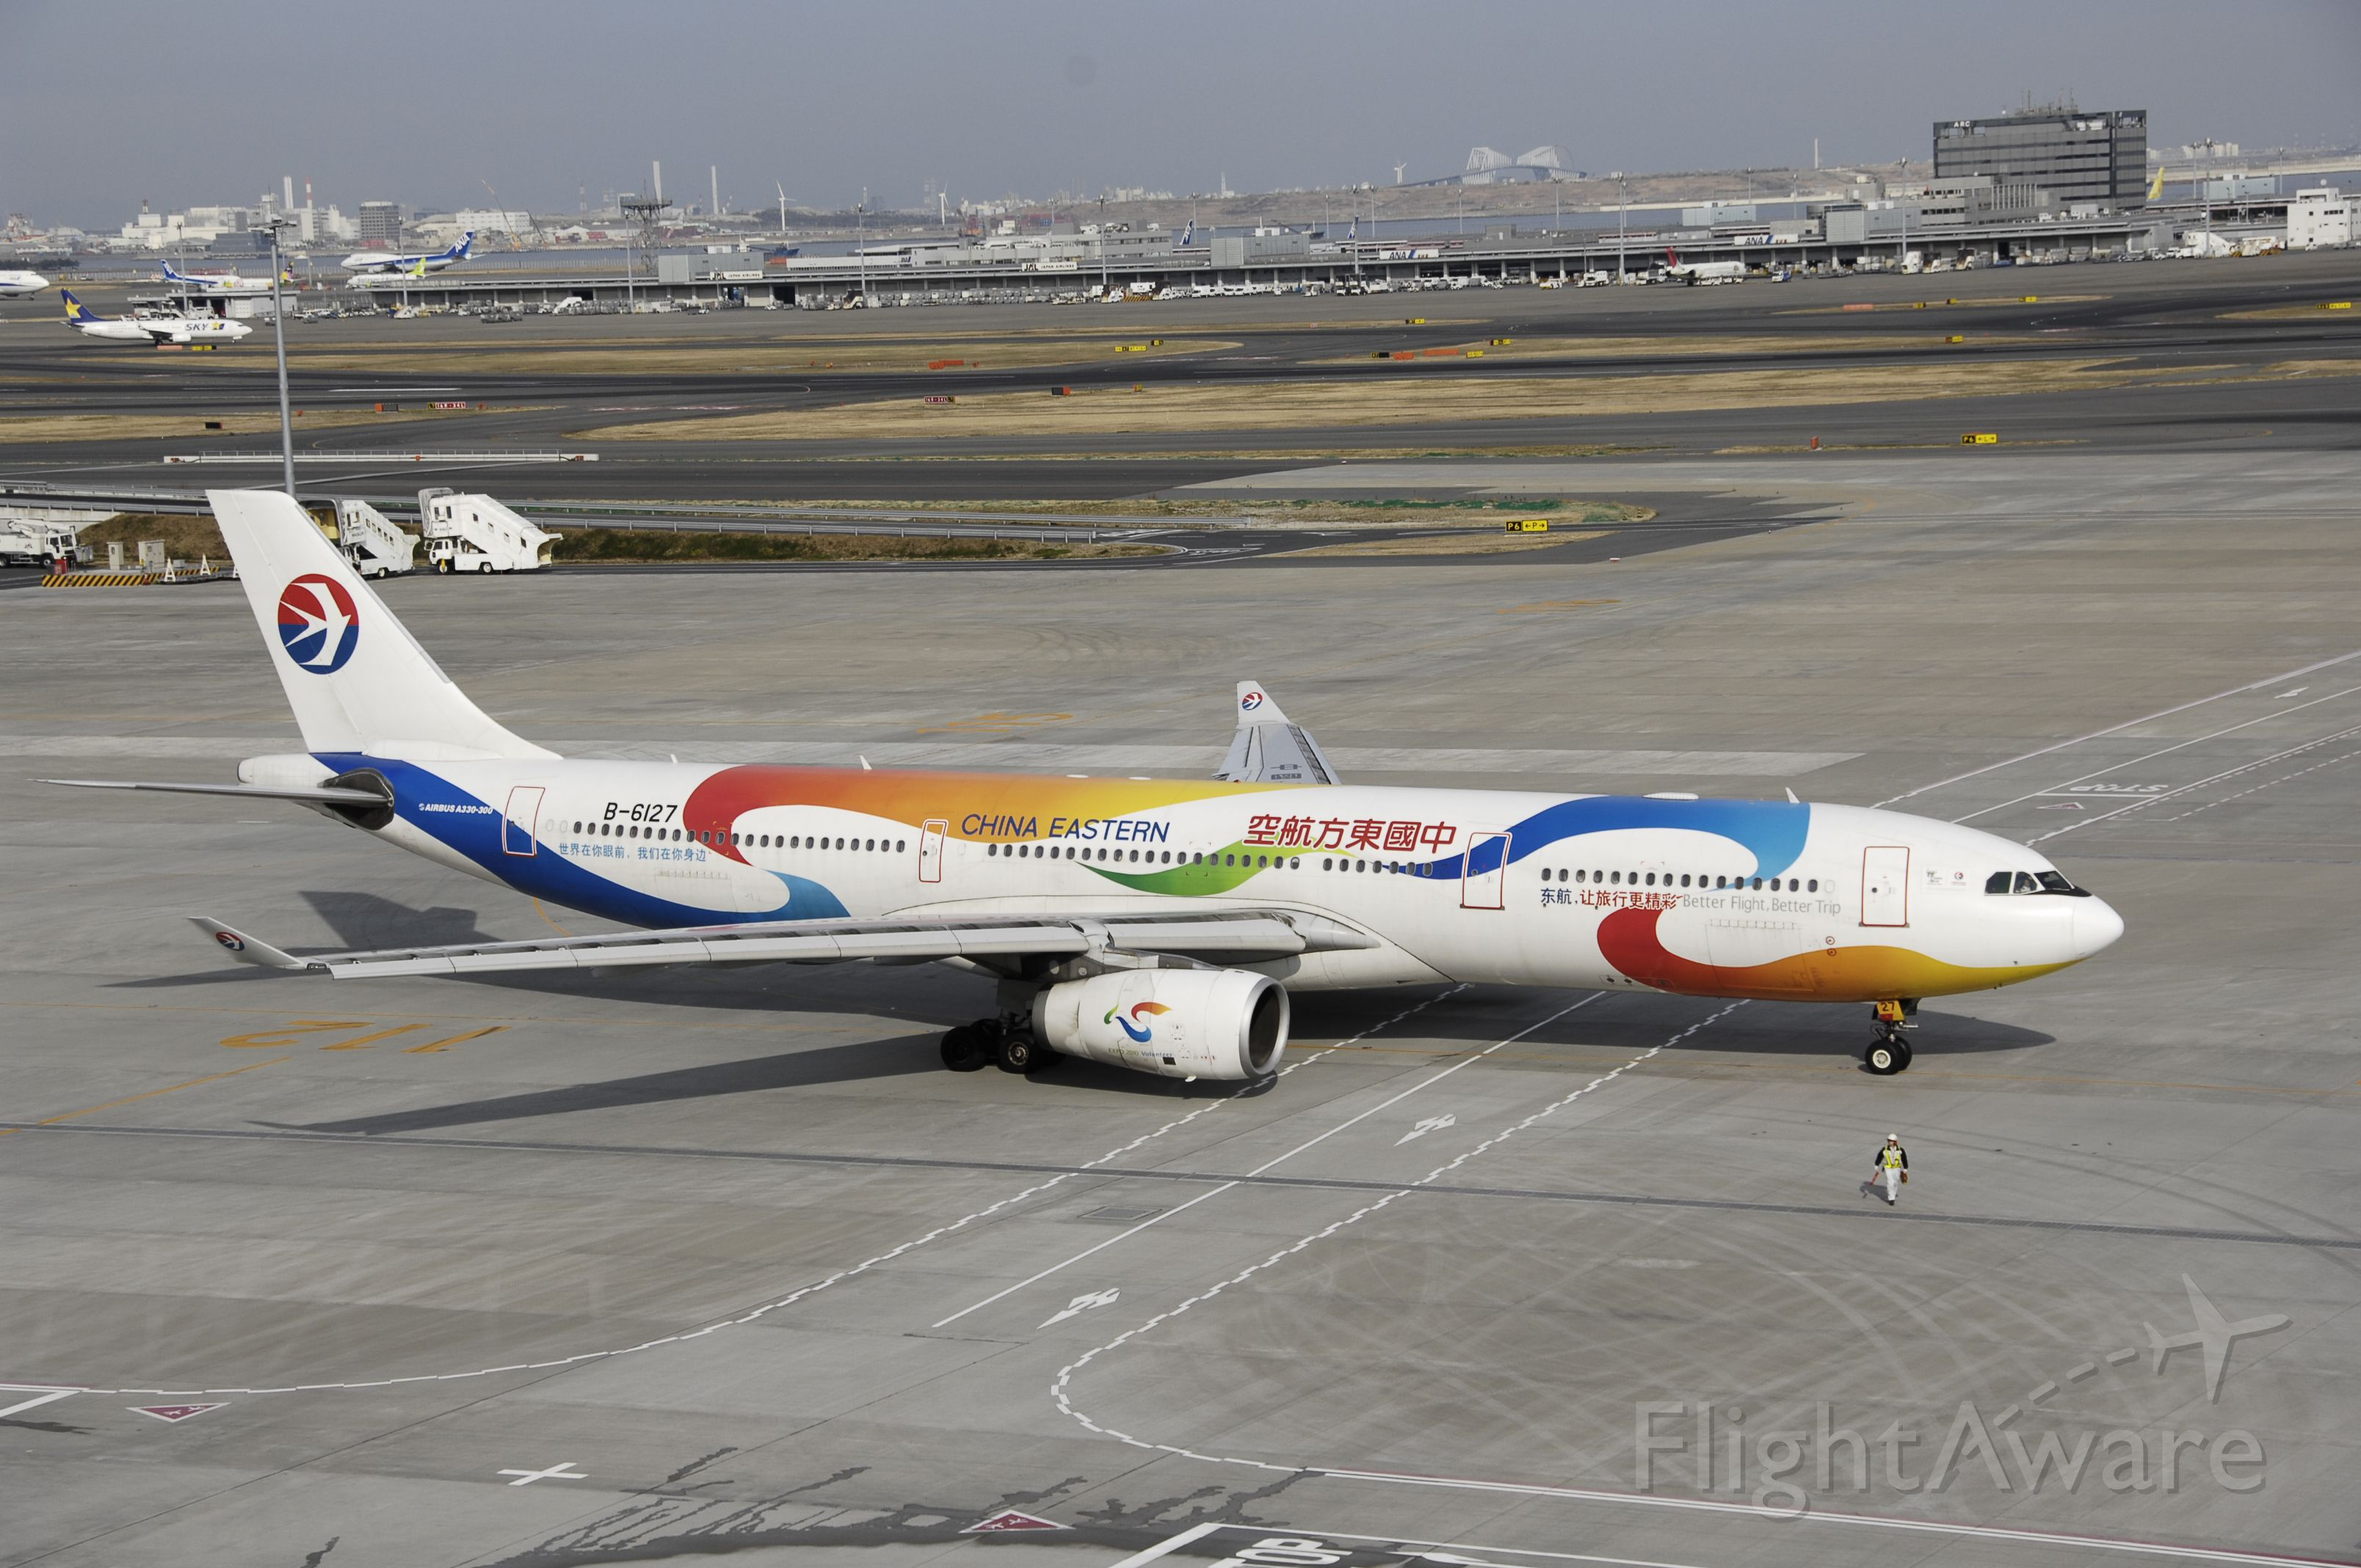 """Airbus A330-300 (B-6127) - Taxi at Haneda Intl Airport on 2012/01/10 """" Expo 2010 c/s"""""""